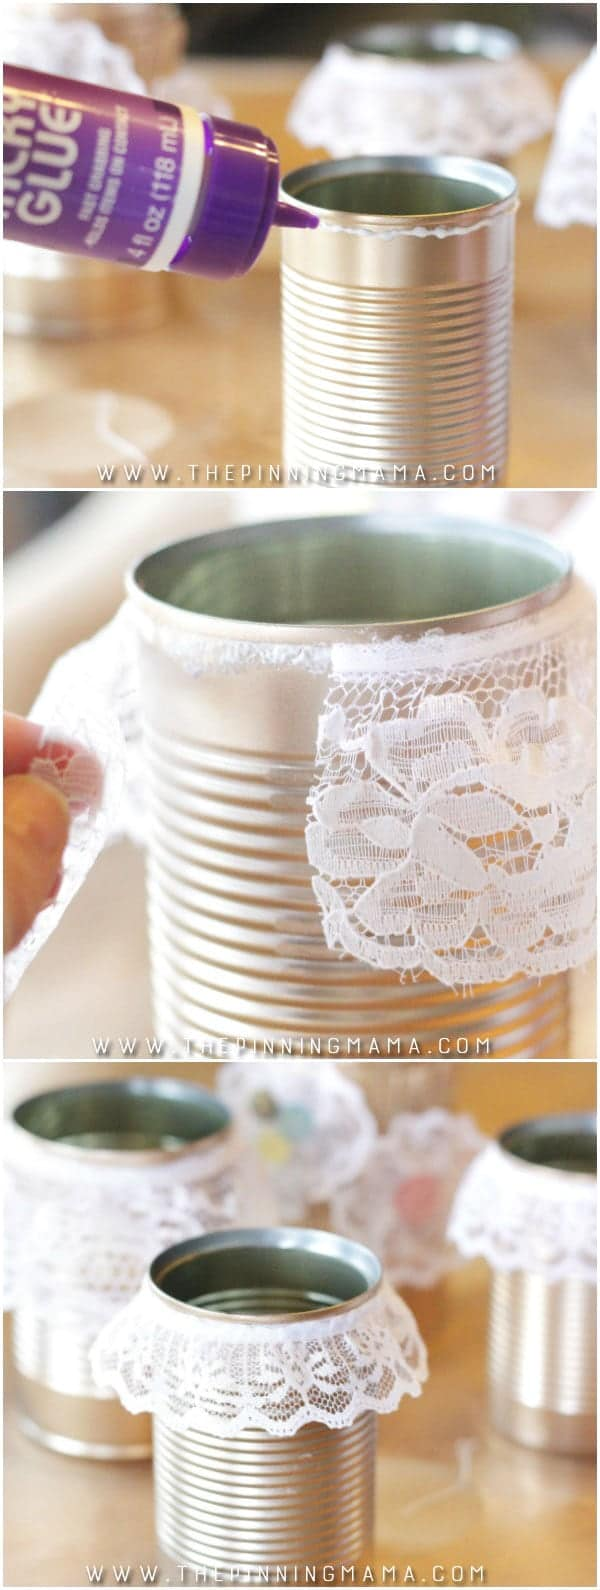 Add lace to in cans for affordable and really cute shabby chic decor! Such an easy craft idea!